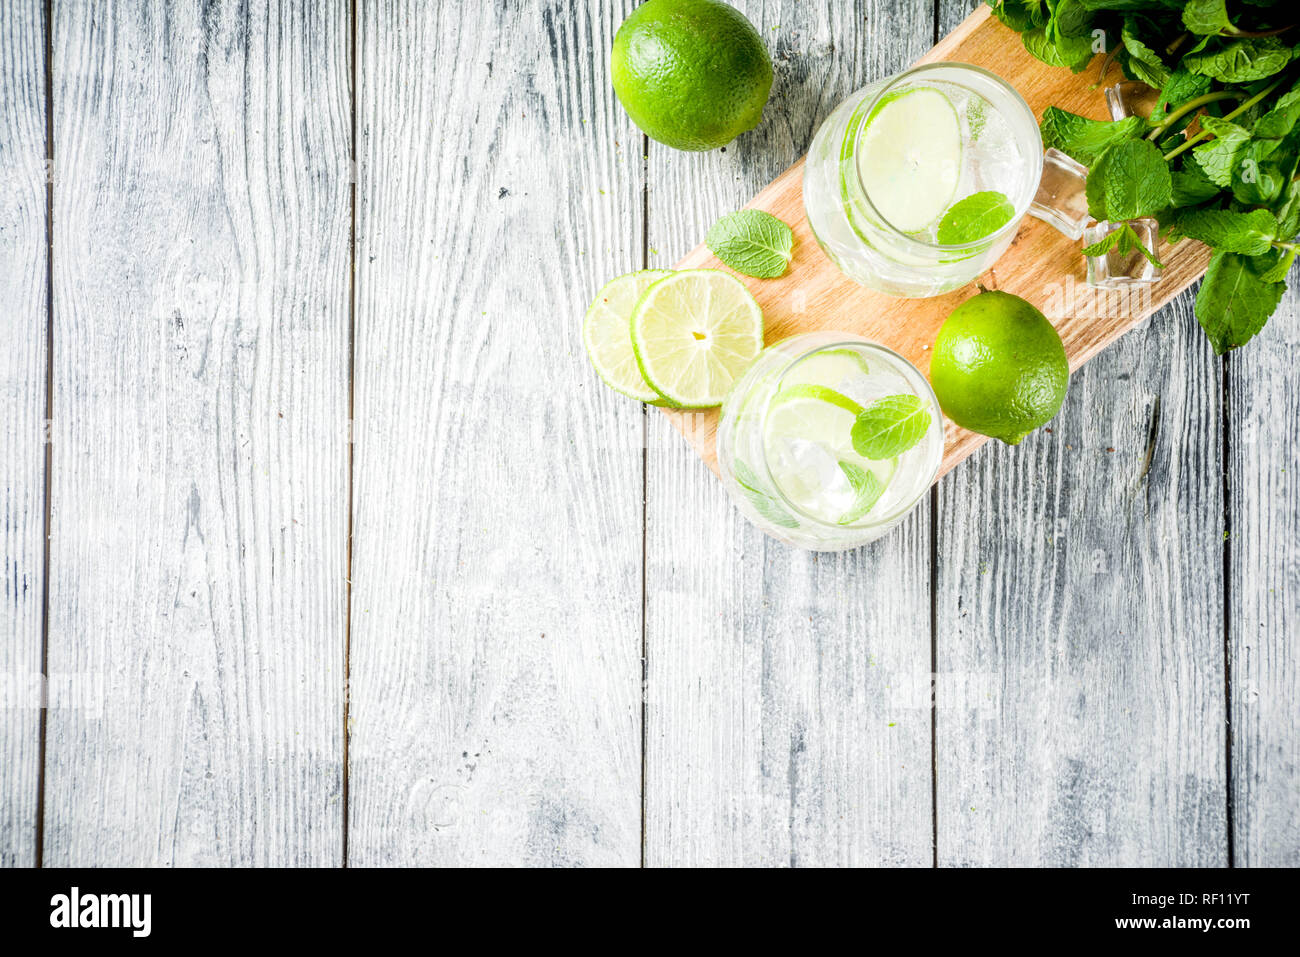 Summer sour drink, with lime and mint, homemade cocktail mojito in two glasses, white wooden background, with fresh limes, mint leaves, ice cubes, cop - Stock Image